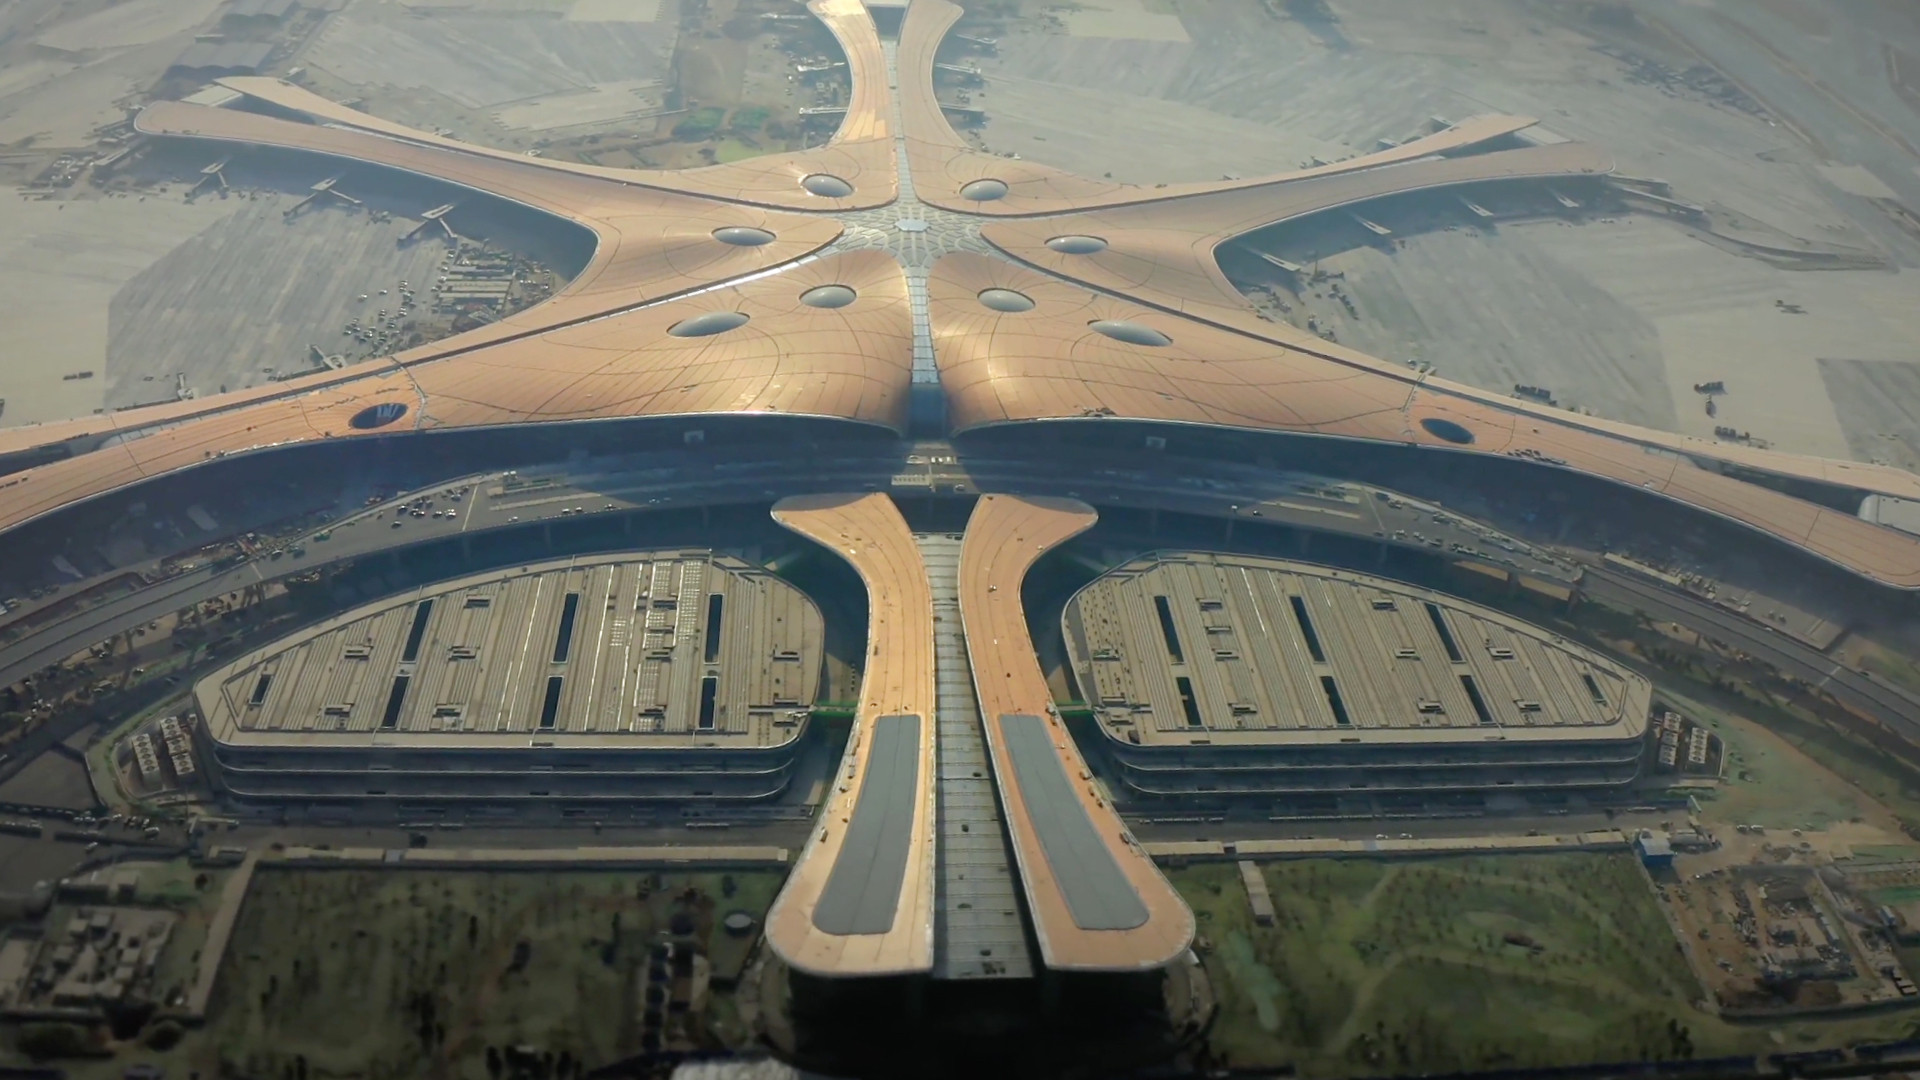 The Beijing Daxing International Airport in China, designed by Zaha Hadid Architects | Beijing Daxing International Airport | Zaha Hadid Architects | STIRworld